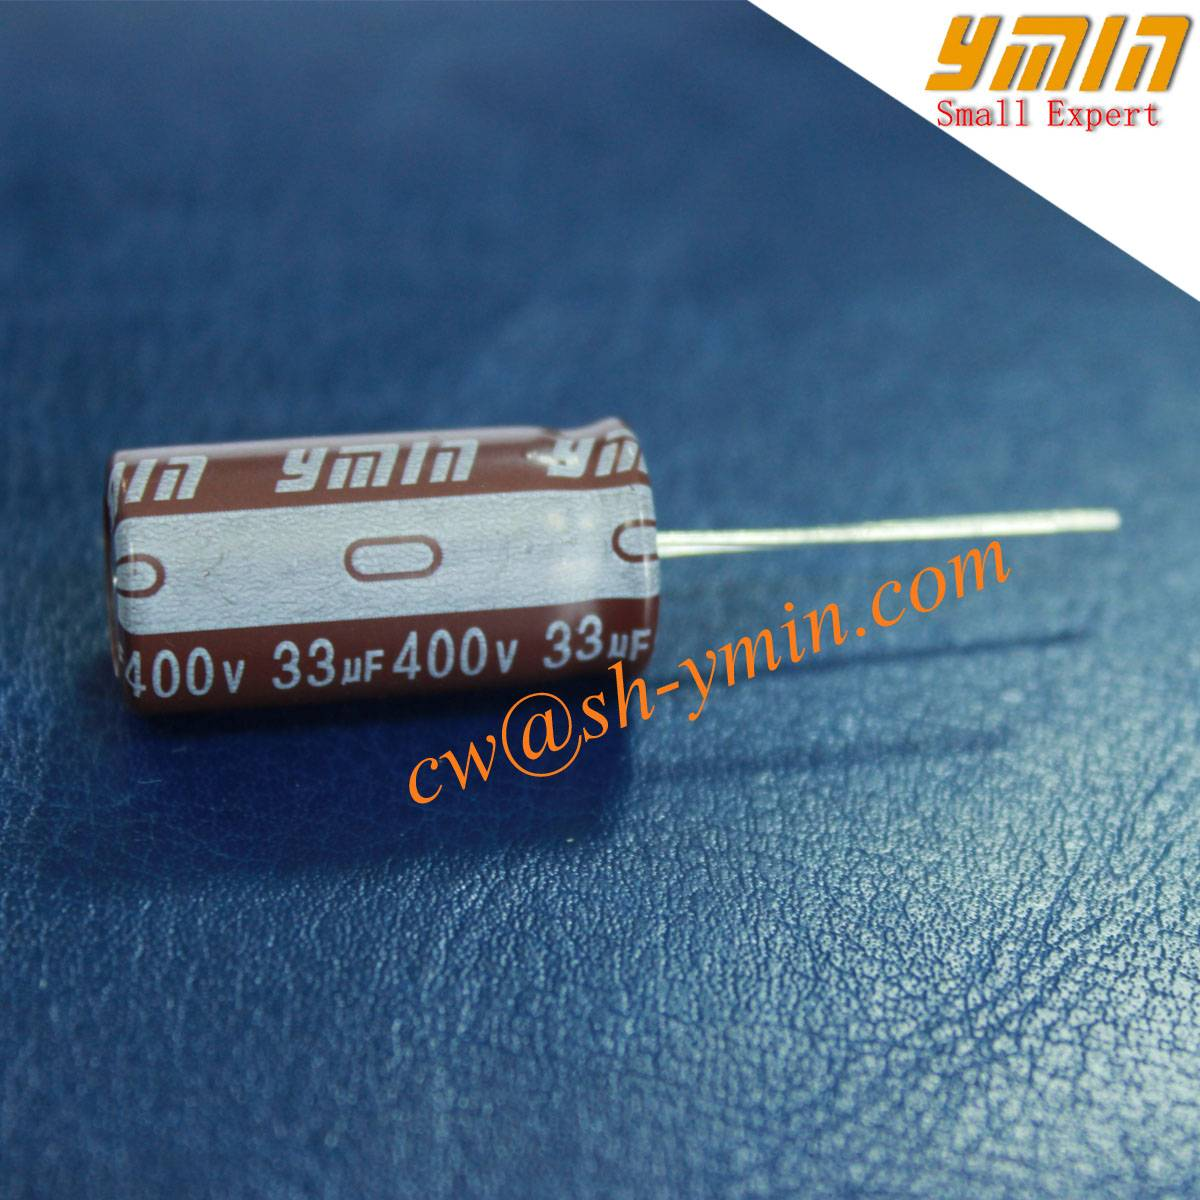 400V 33uF  Lighting Capacitor Radial Electrolytic Capacitor for LED Floodlight